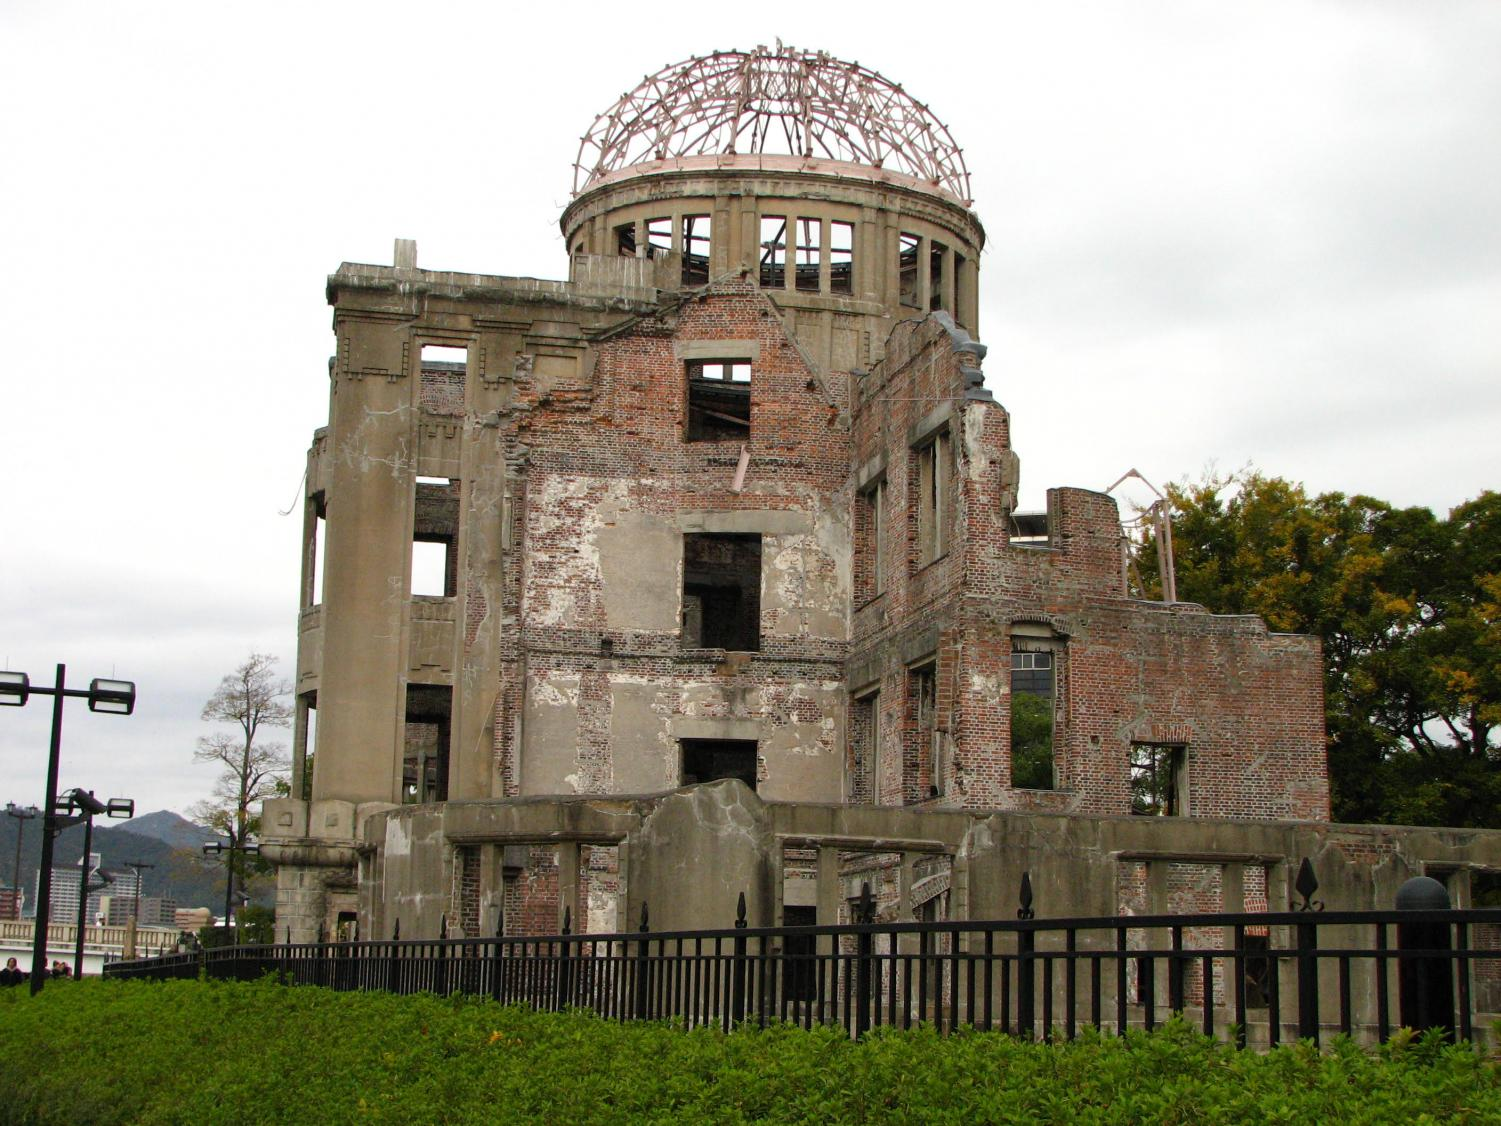 This is a photograph of the A-Bomb Dome, also known as the Hiroshima Peace Memorial. This building was one of the few buildings that remains standing since the bombing of the area in 1945.